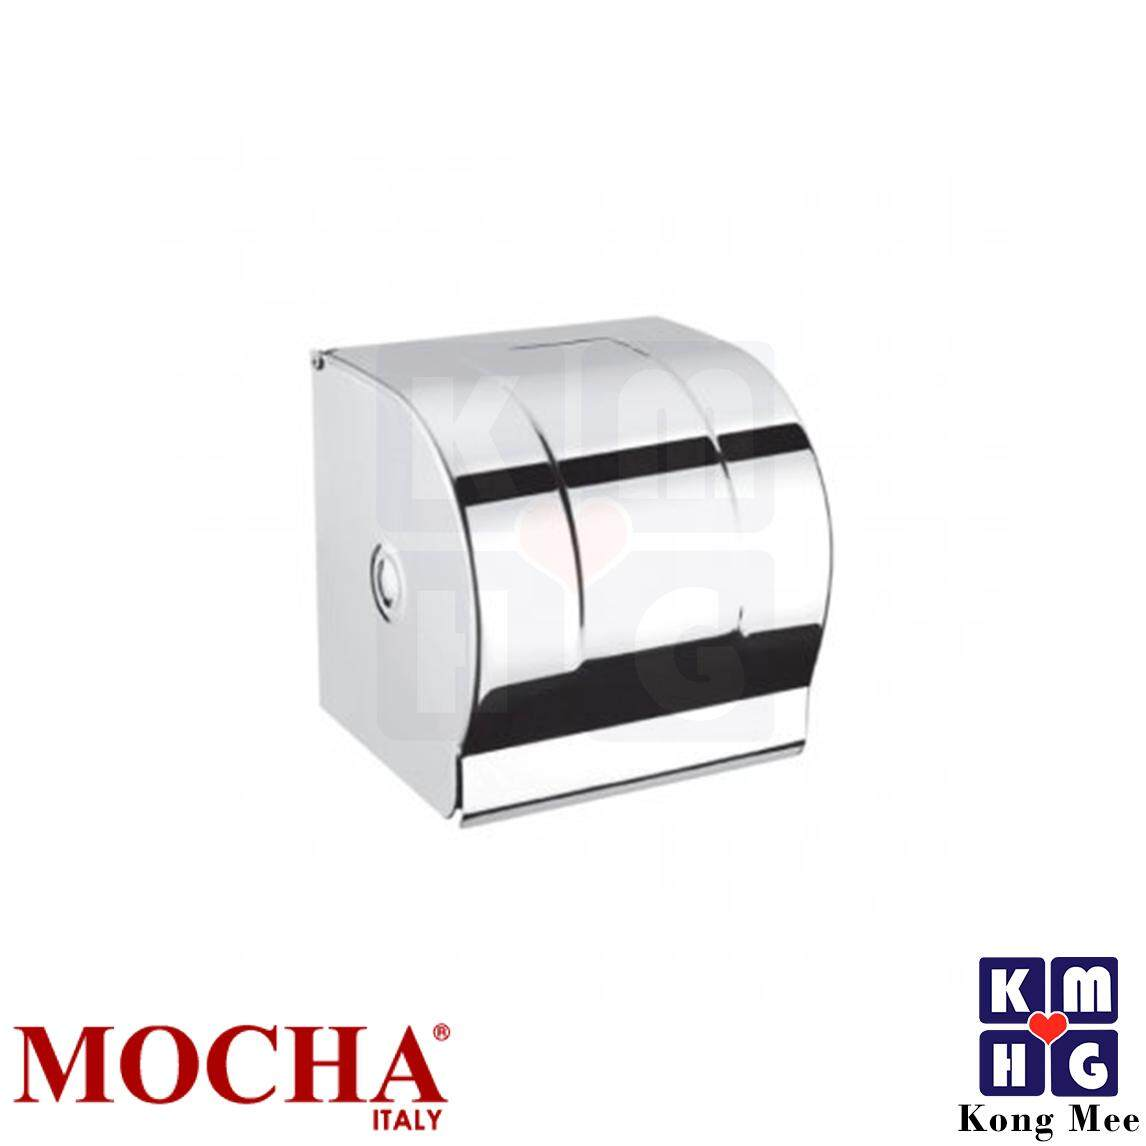 Mocha Italy - High Quality Paper Holder (M201)